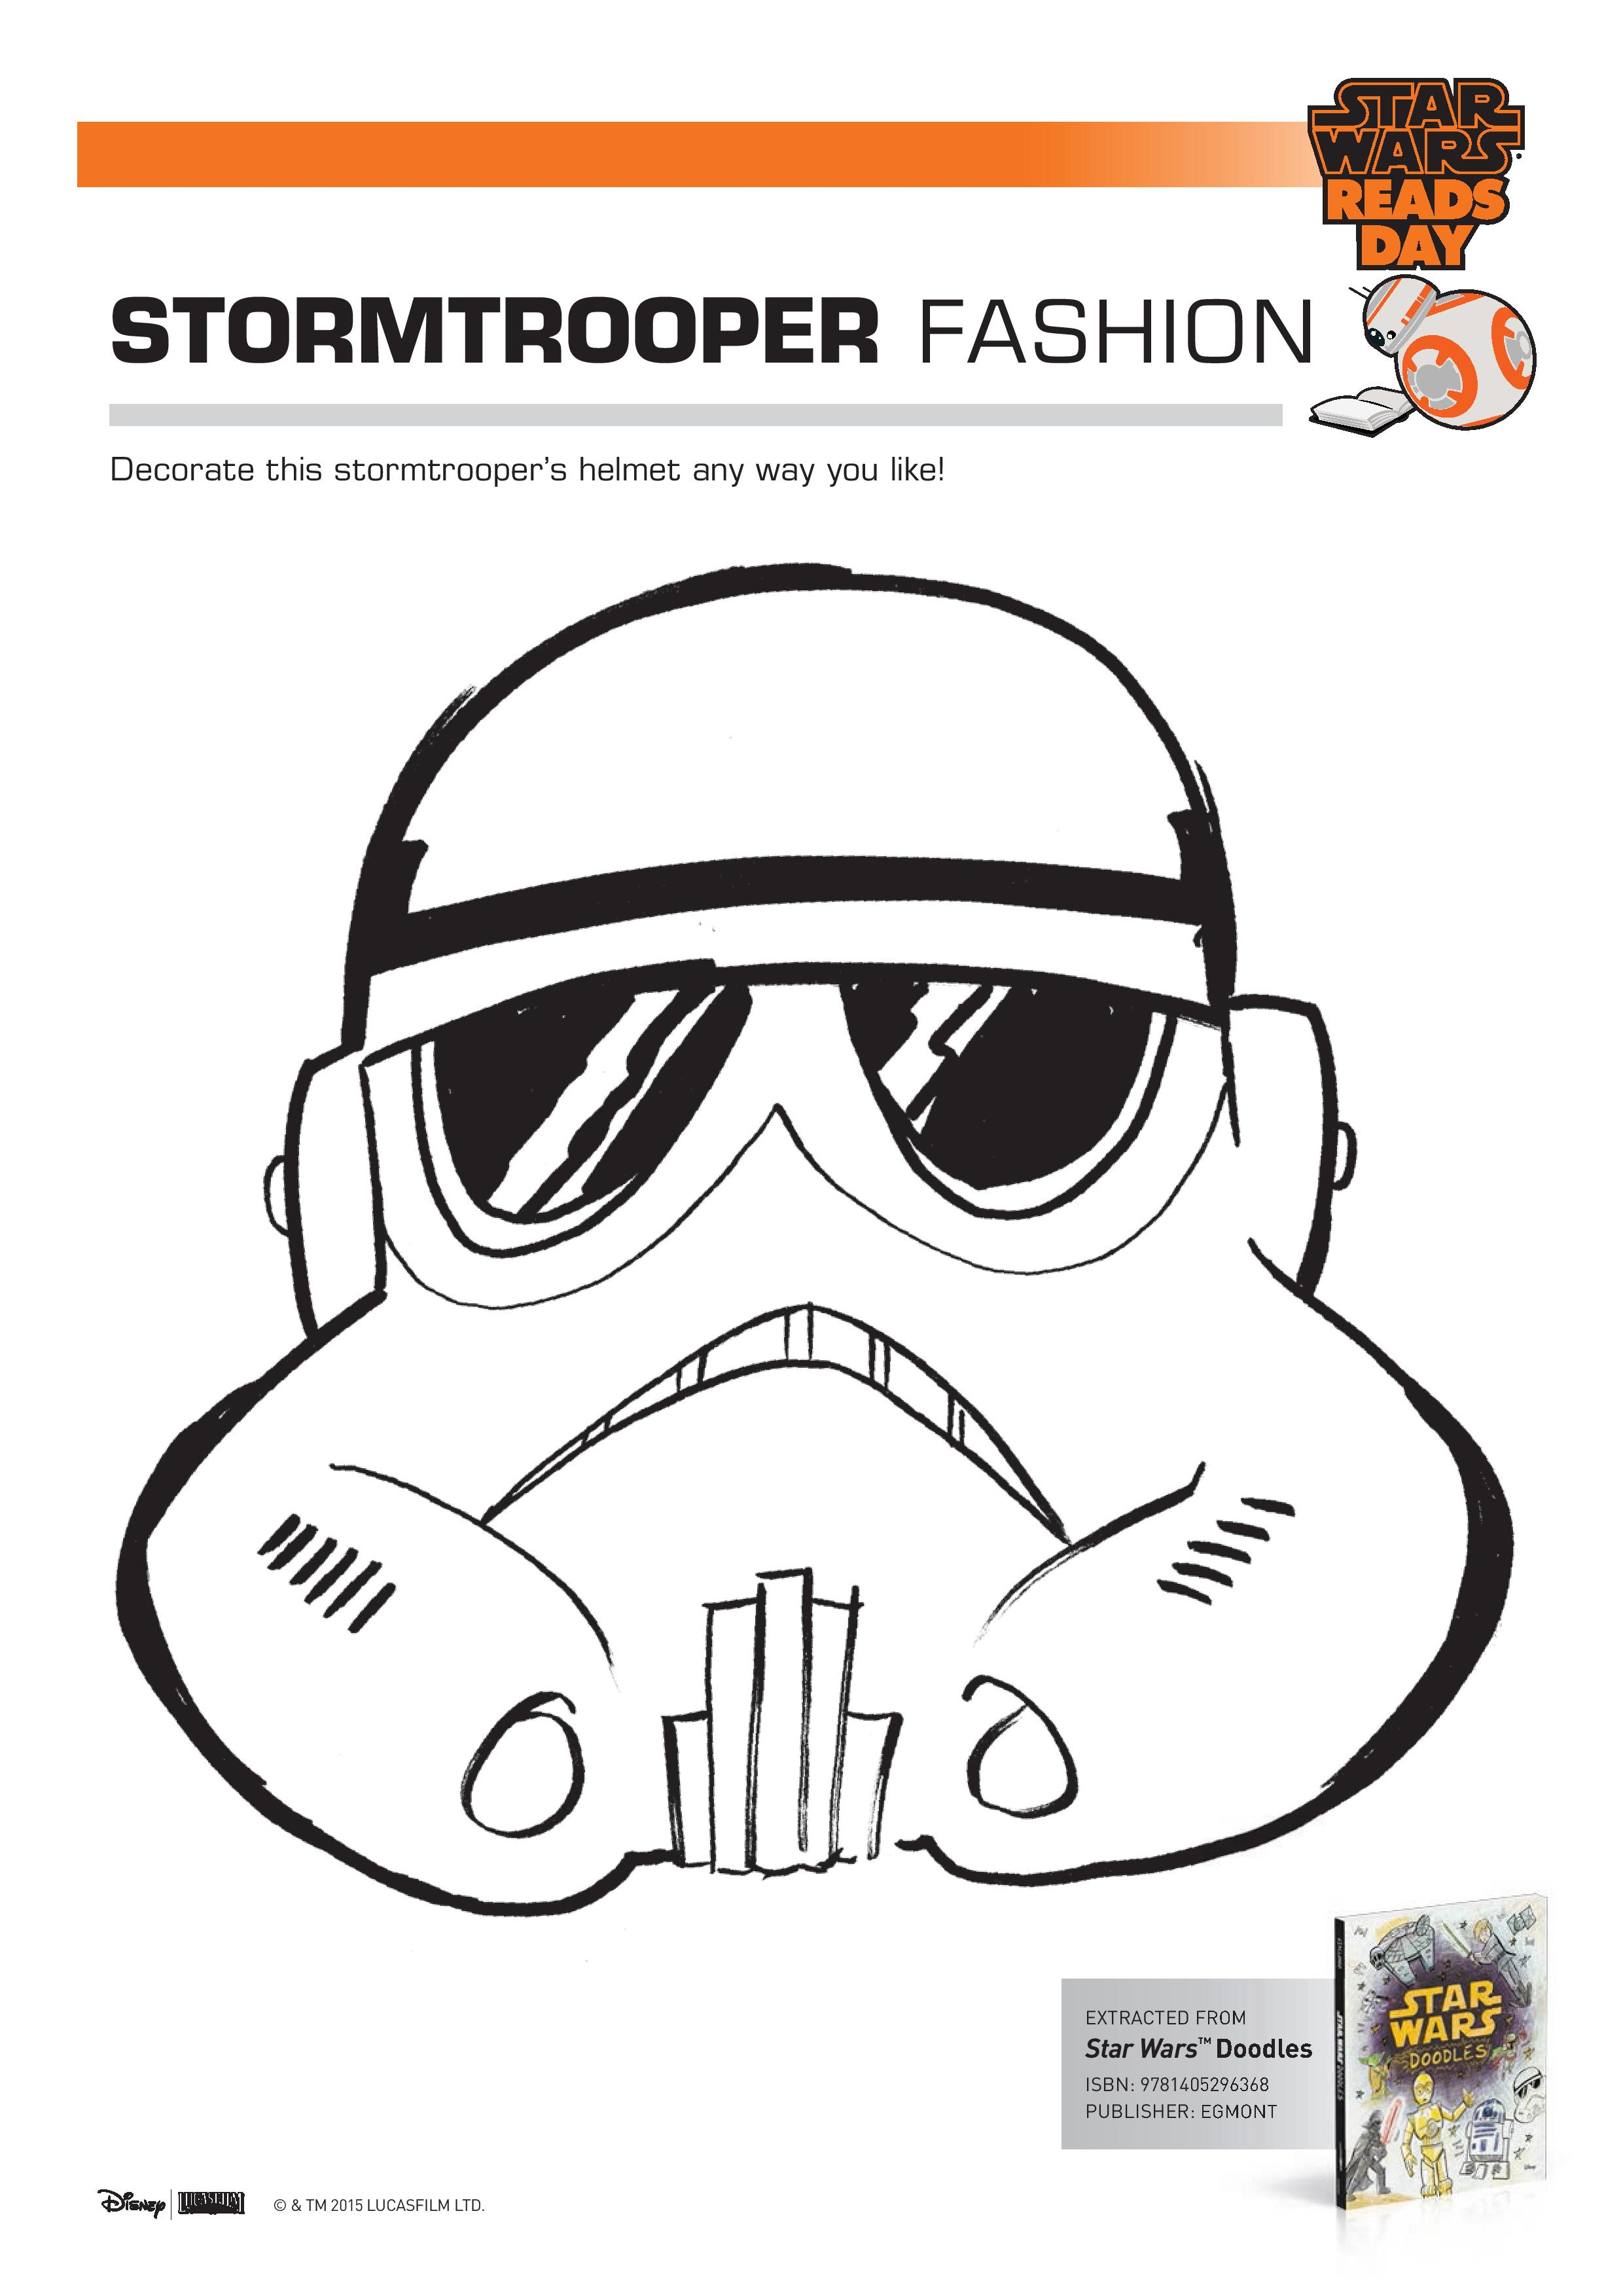 Nifty image intended for star wars printable activities